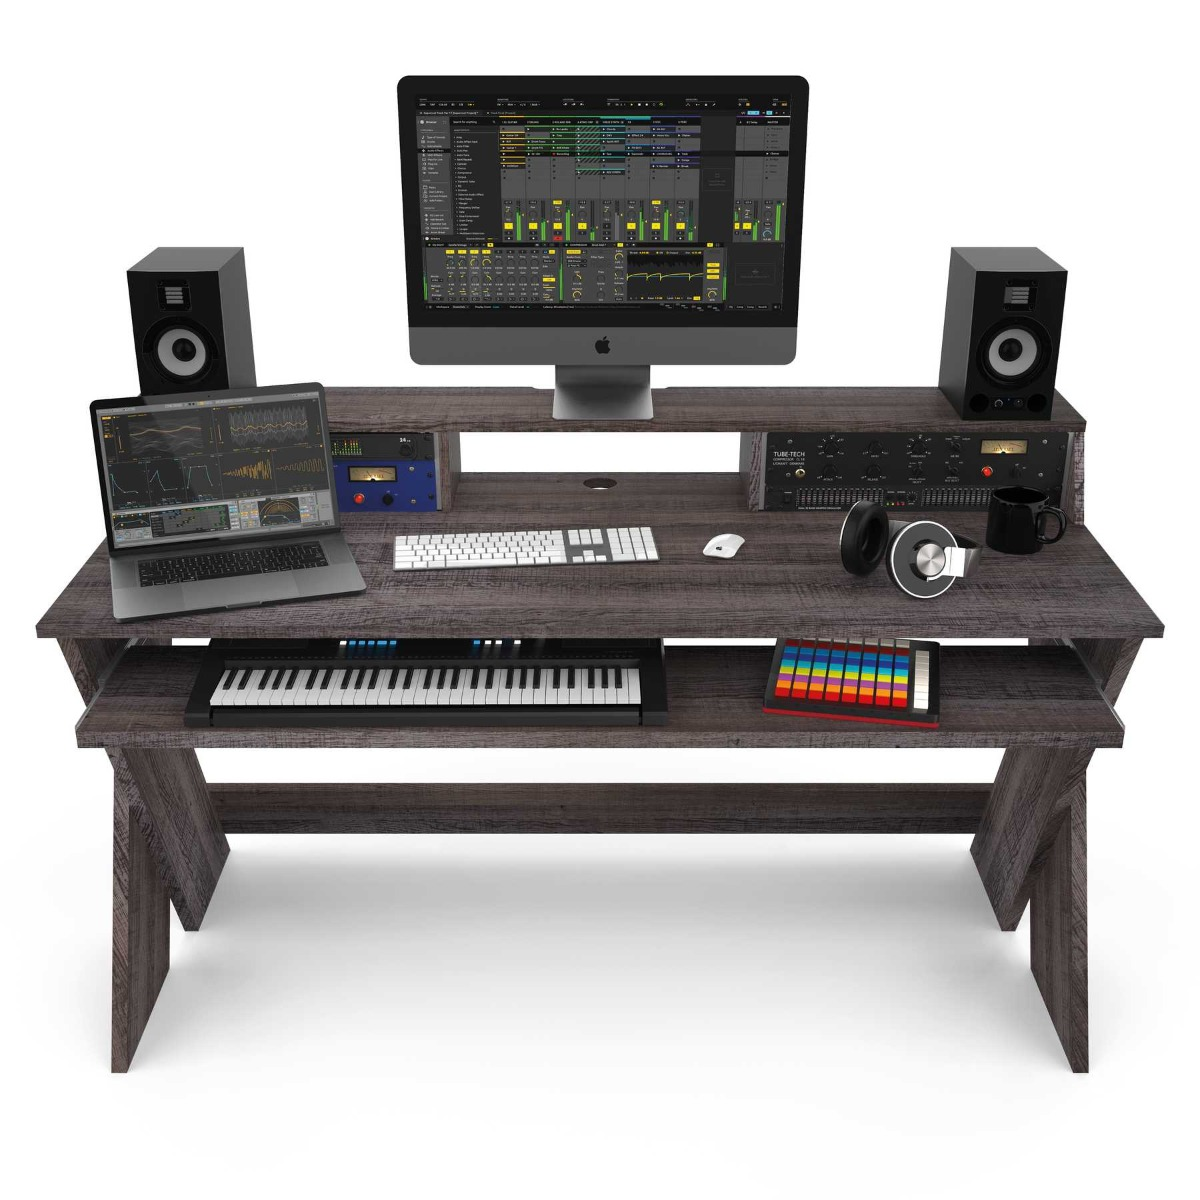 Glorious Sound Desk Pro Walnut Furniture For Djs Producers And